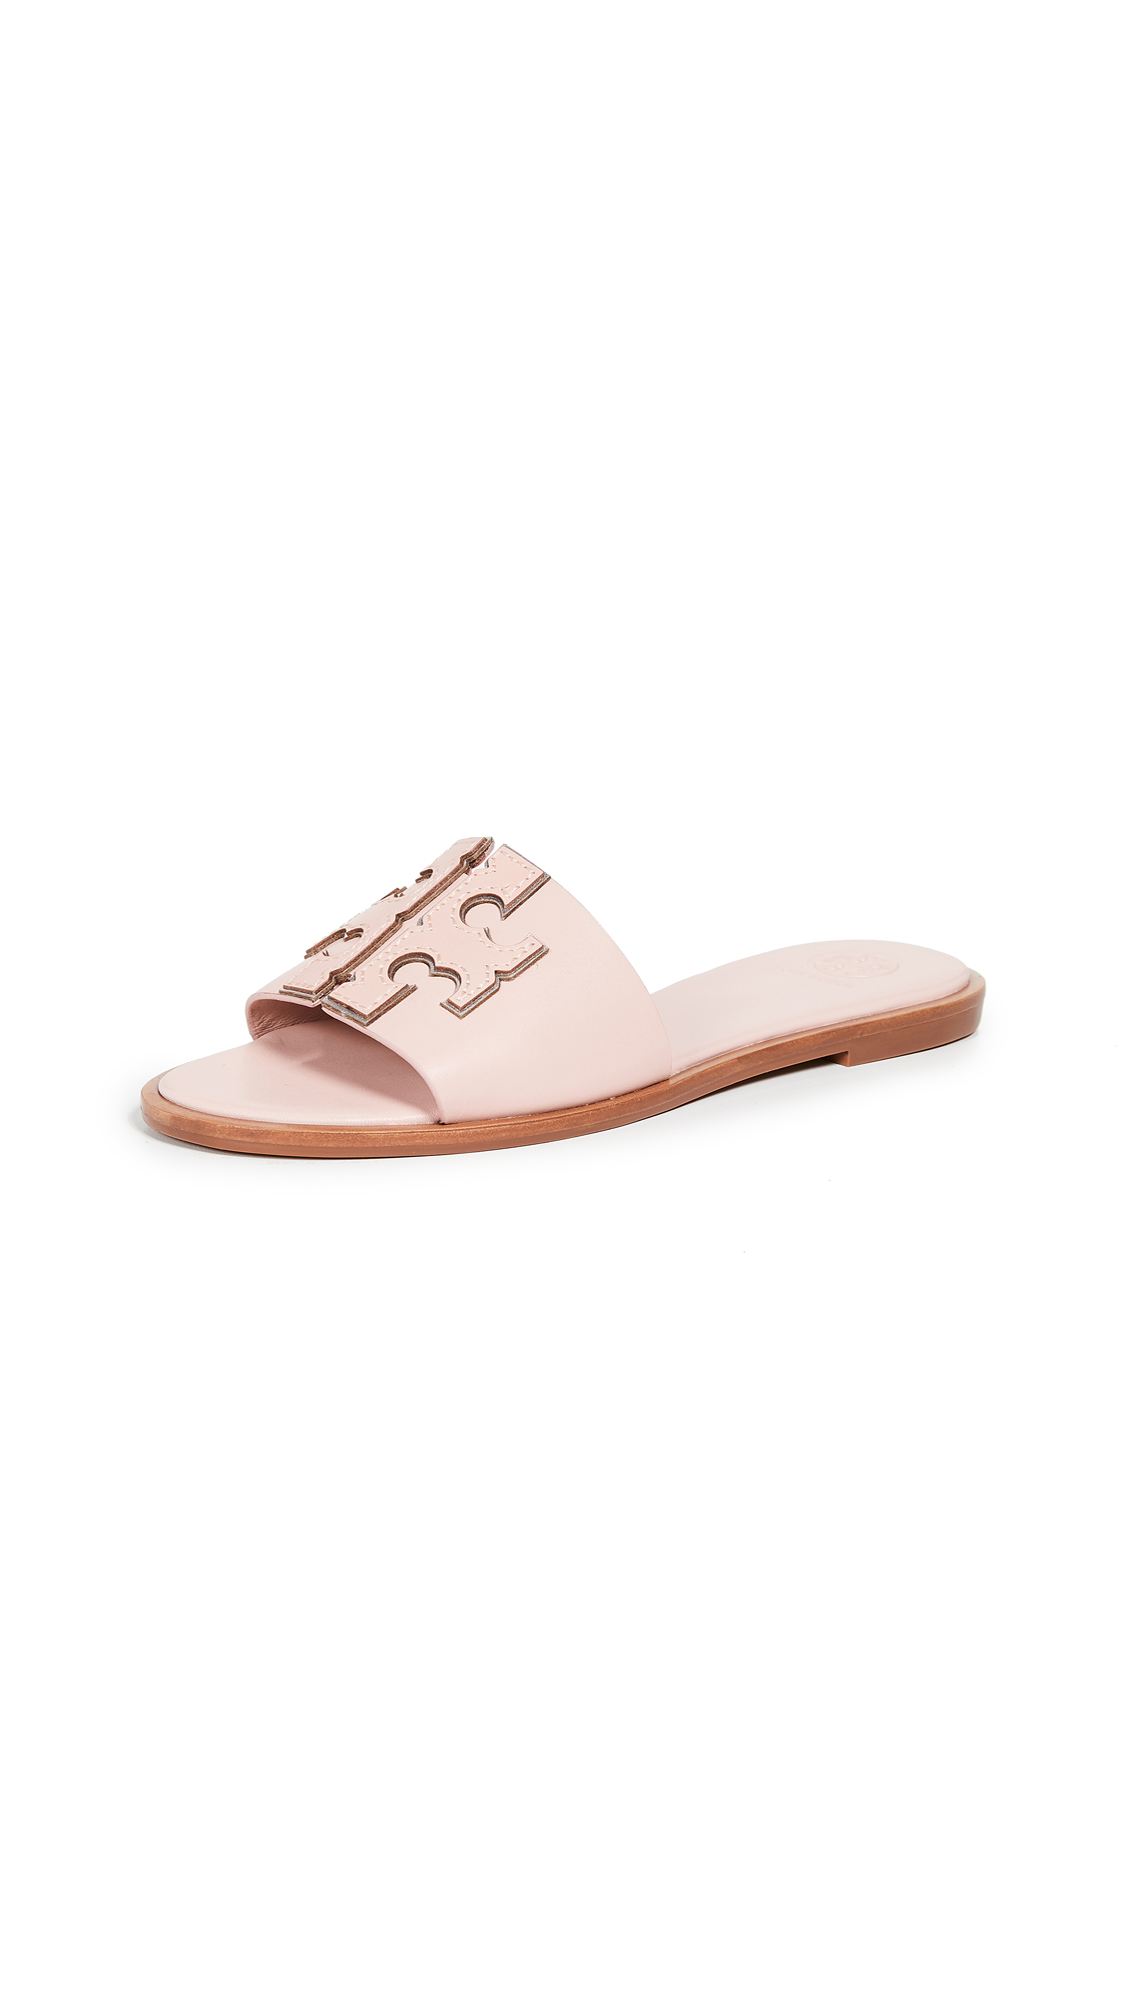 Tory Burch Ines Slide Sandals - Sea Shell Pink/Silver